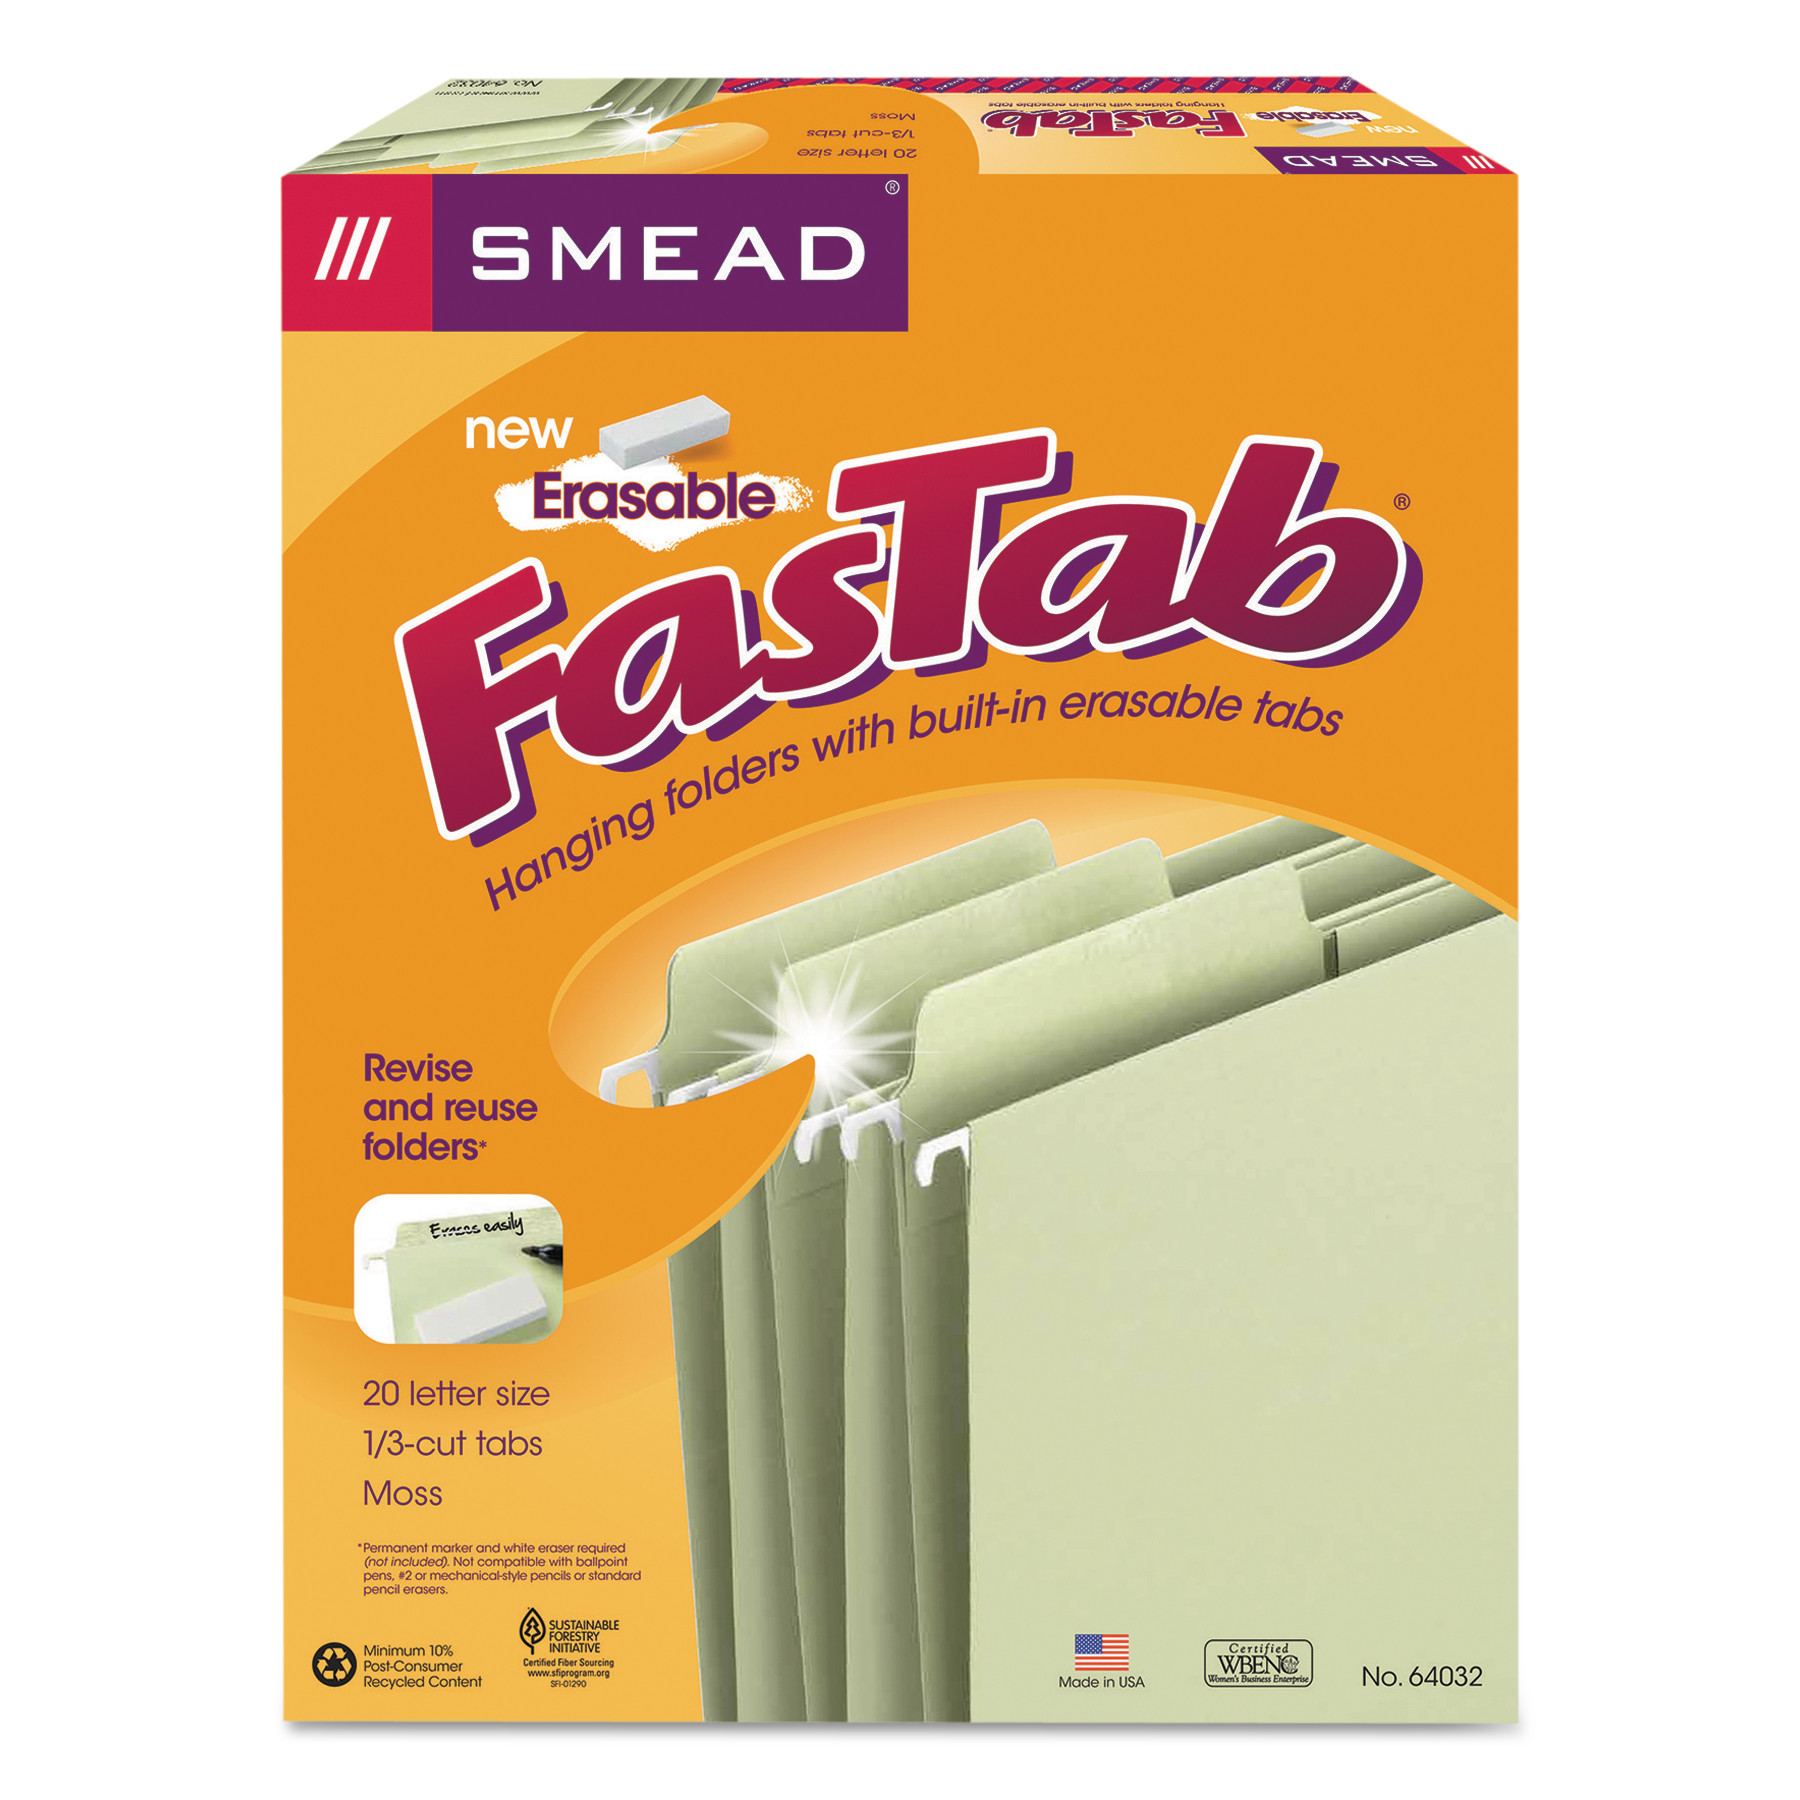 Smead Erasable FasTab Hanging Folders, 1/3-Cut, Letter, 11 Point Stock, Moss, 20/Box